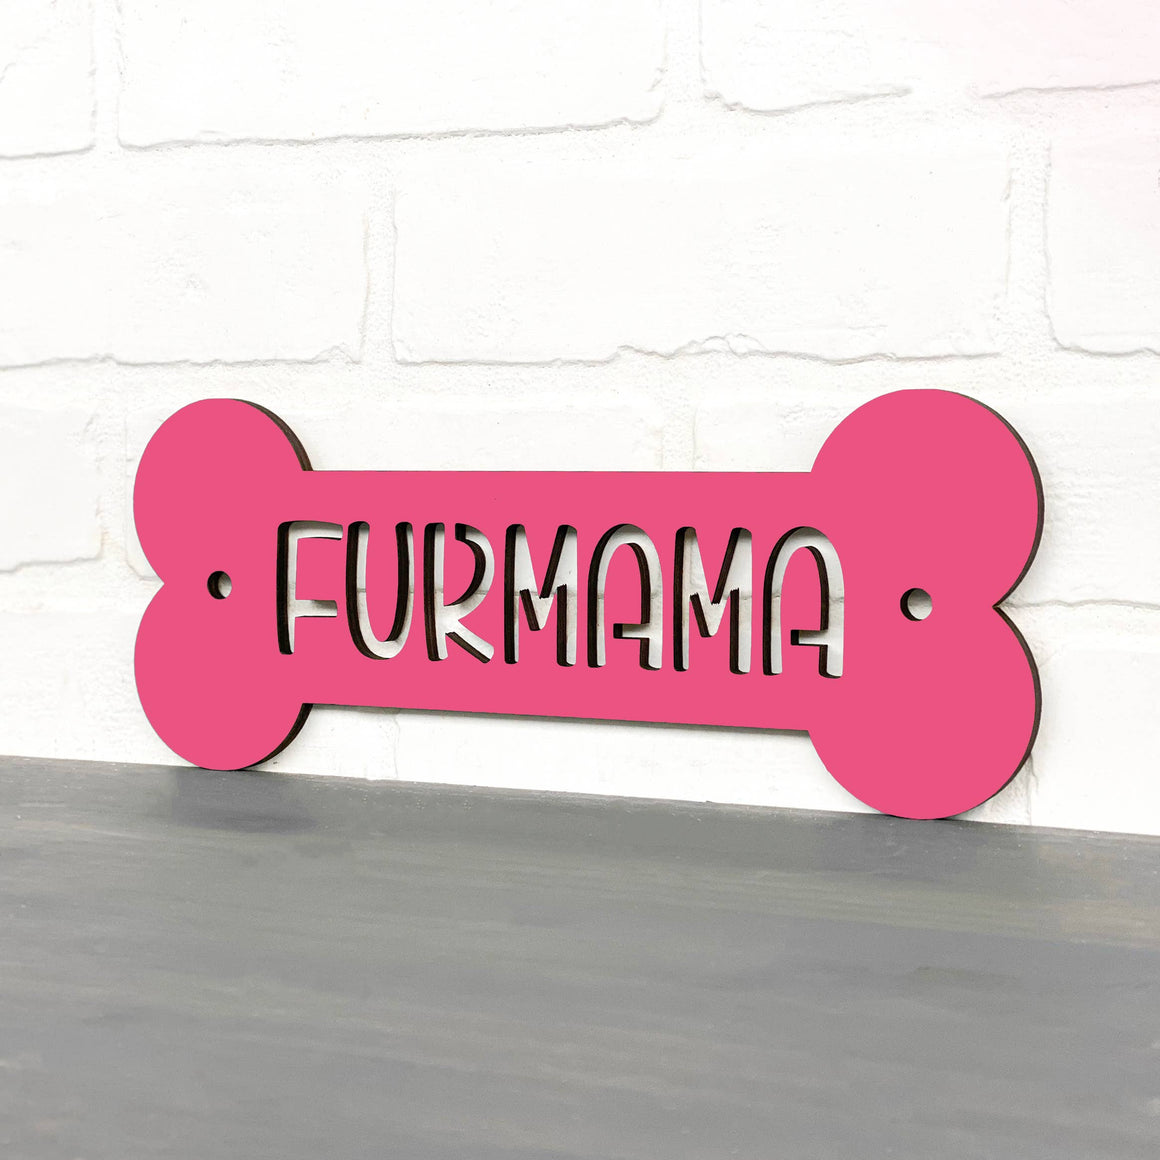 Furmama Wooden Sign